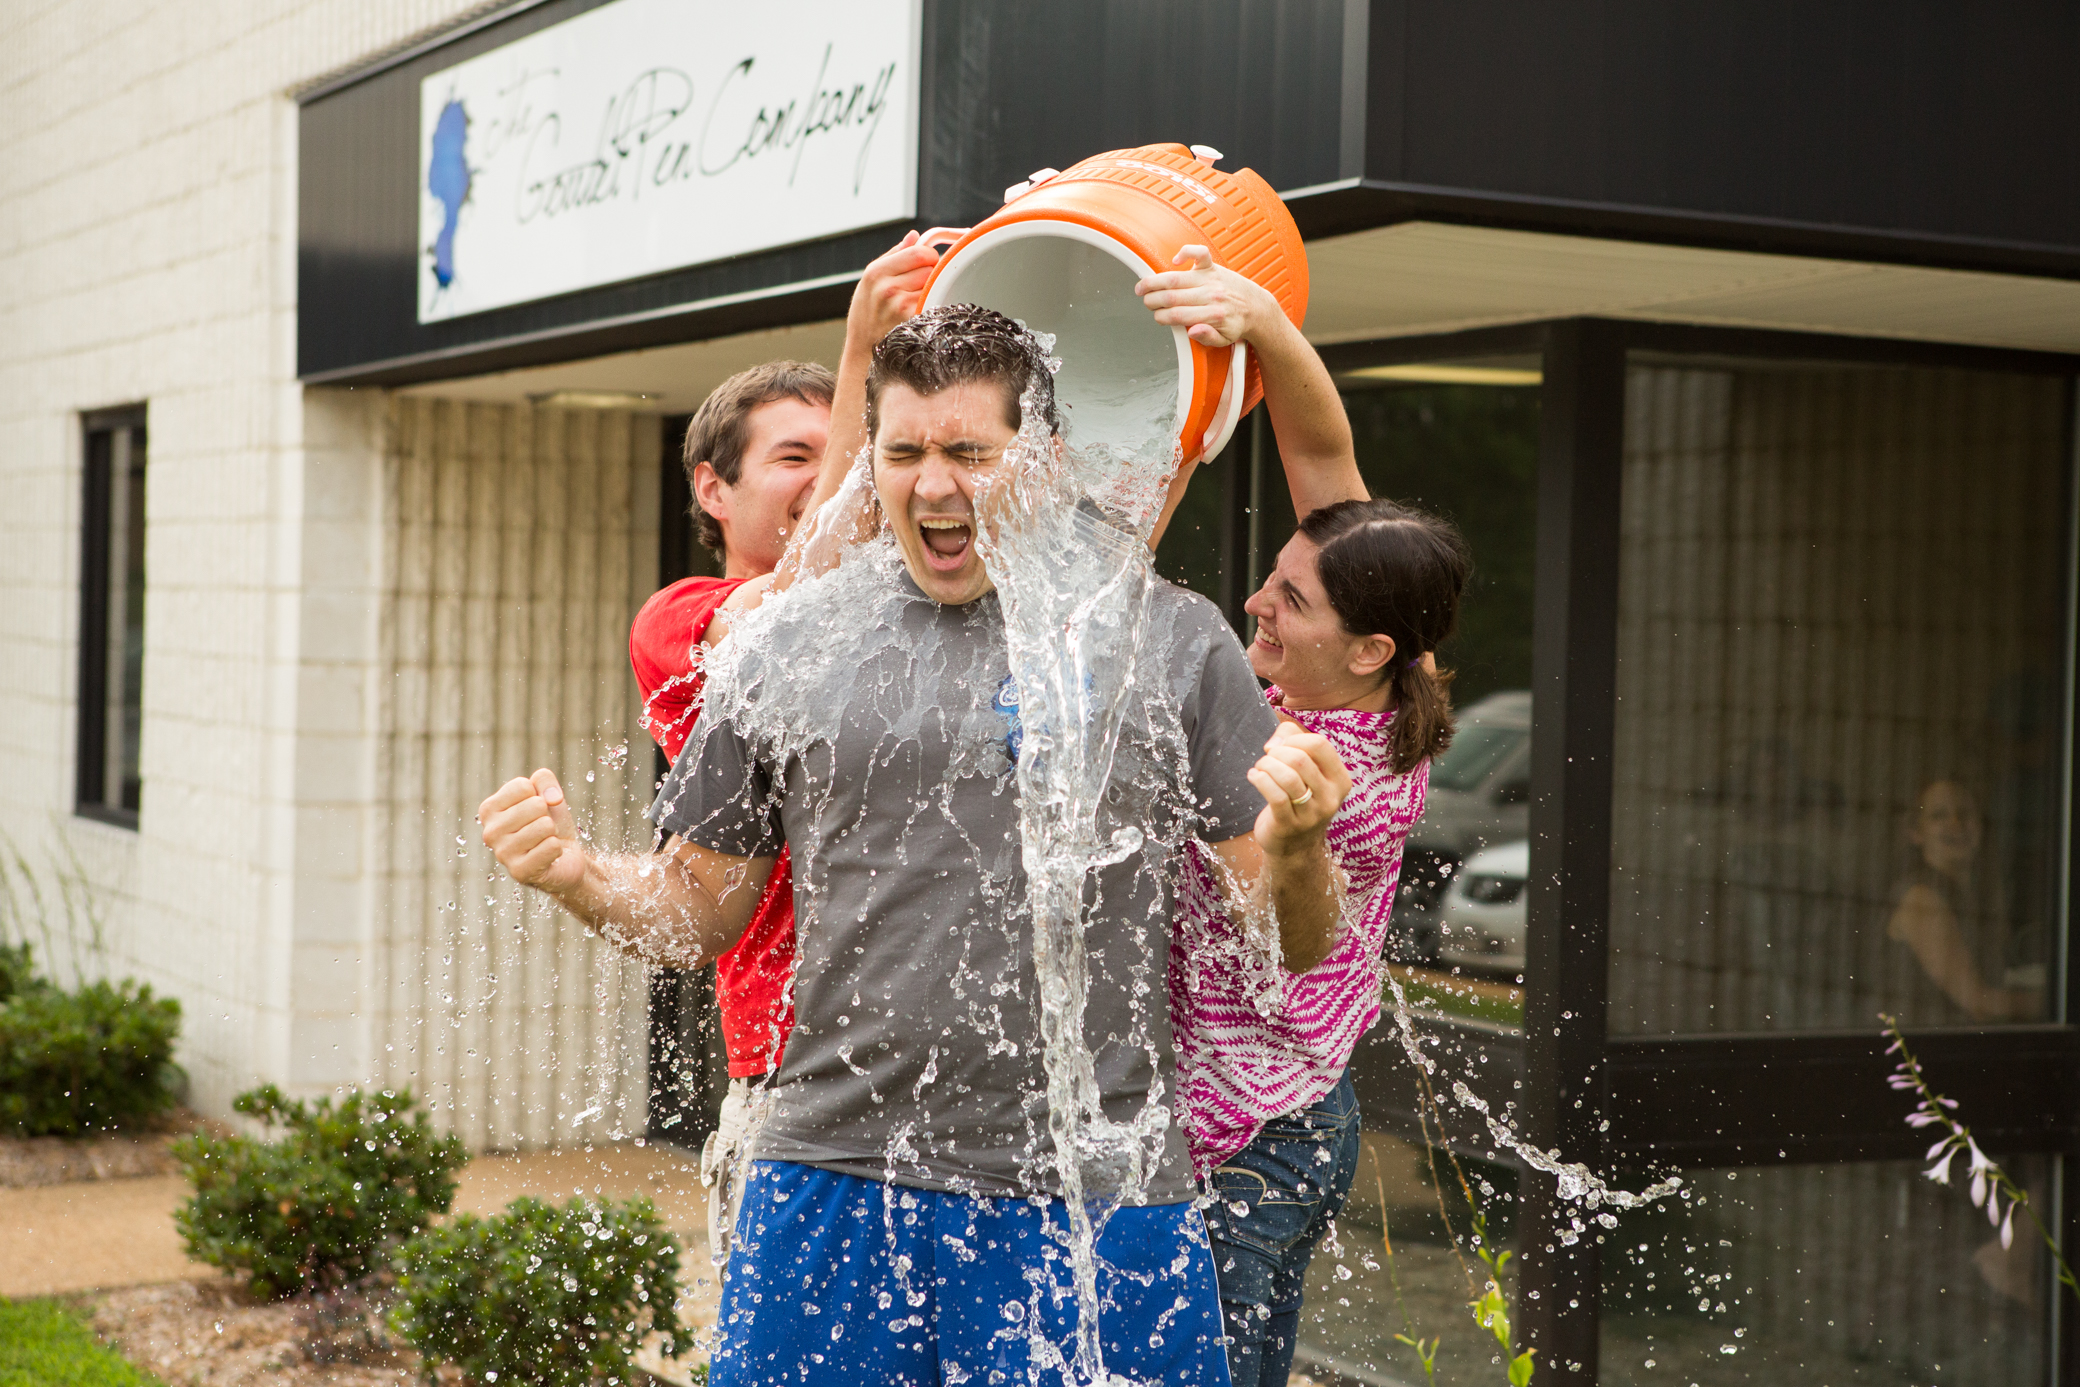 Brian Goulet Accepts The Als Ice Bucket Challenge Goulet